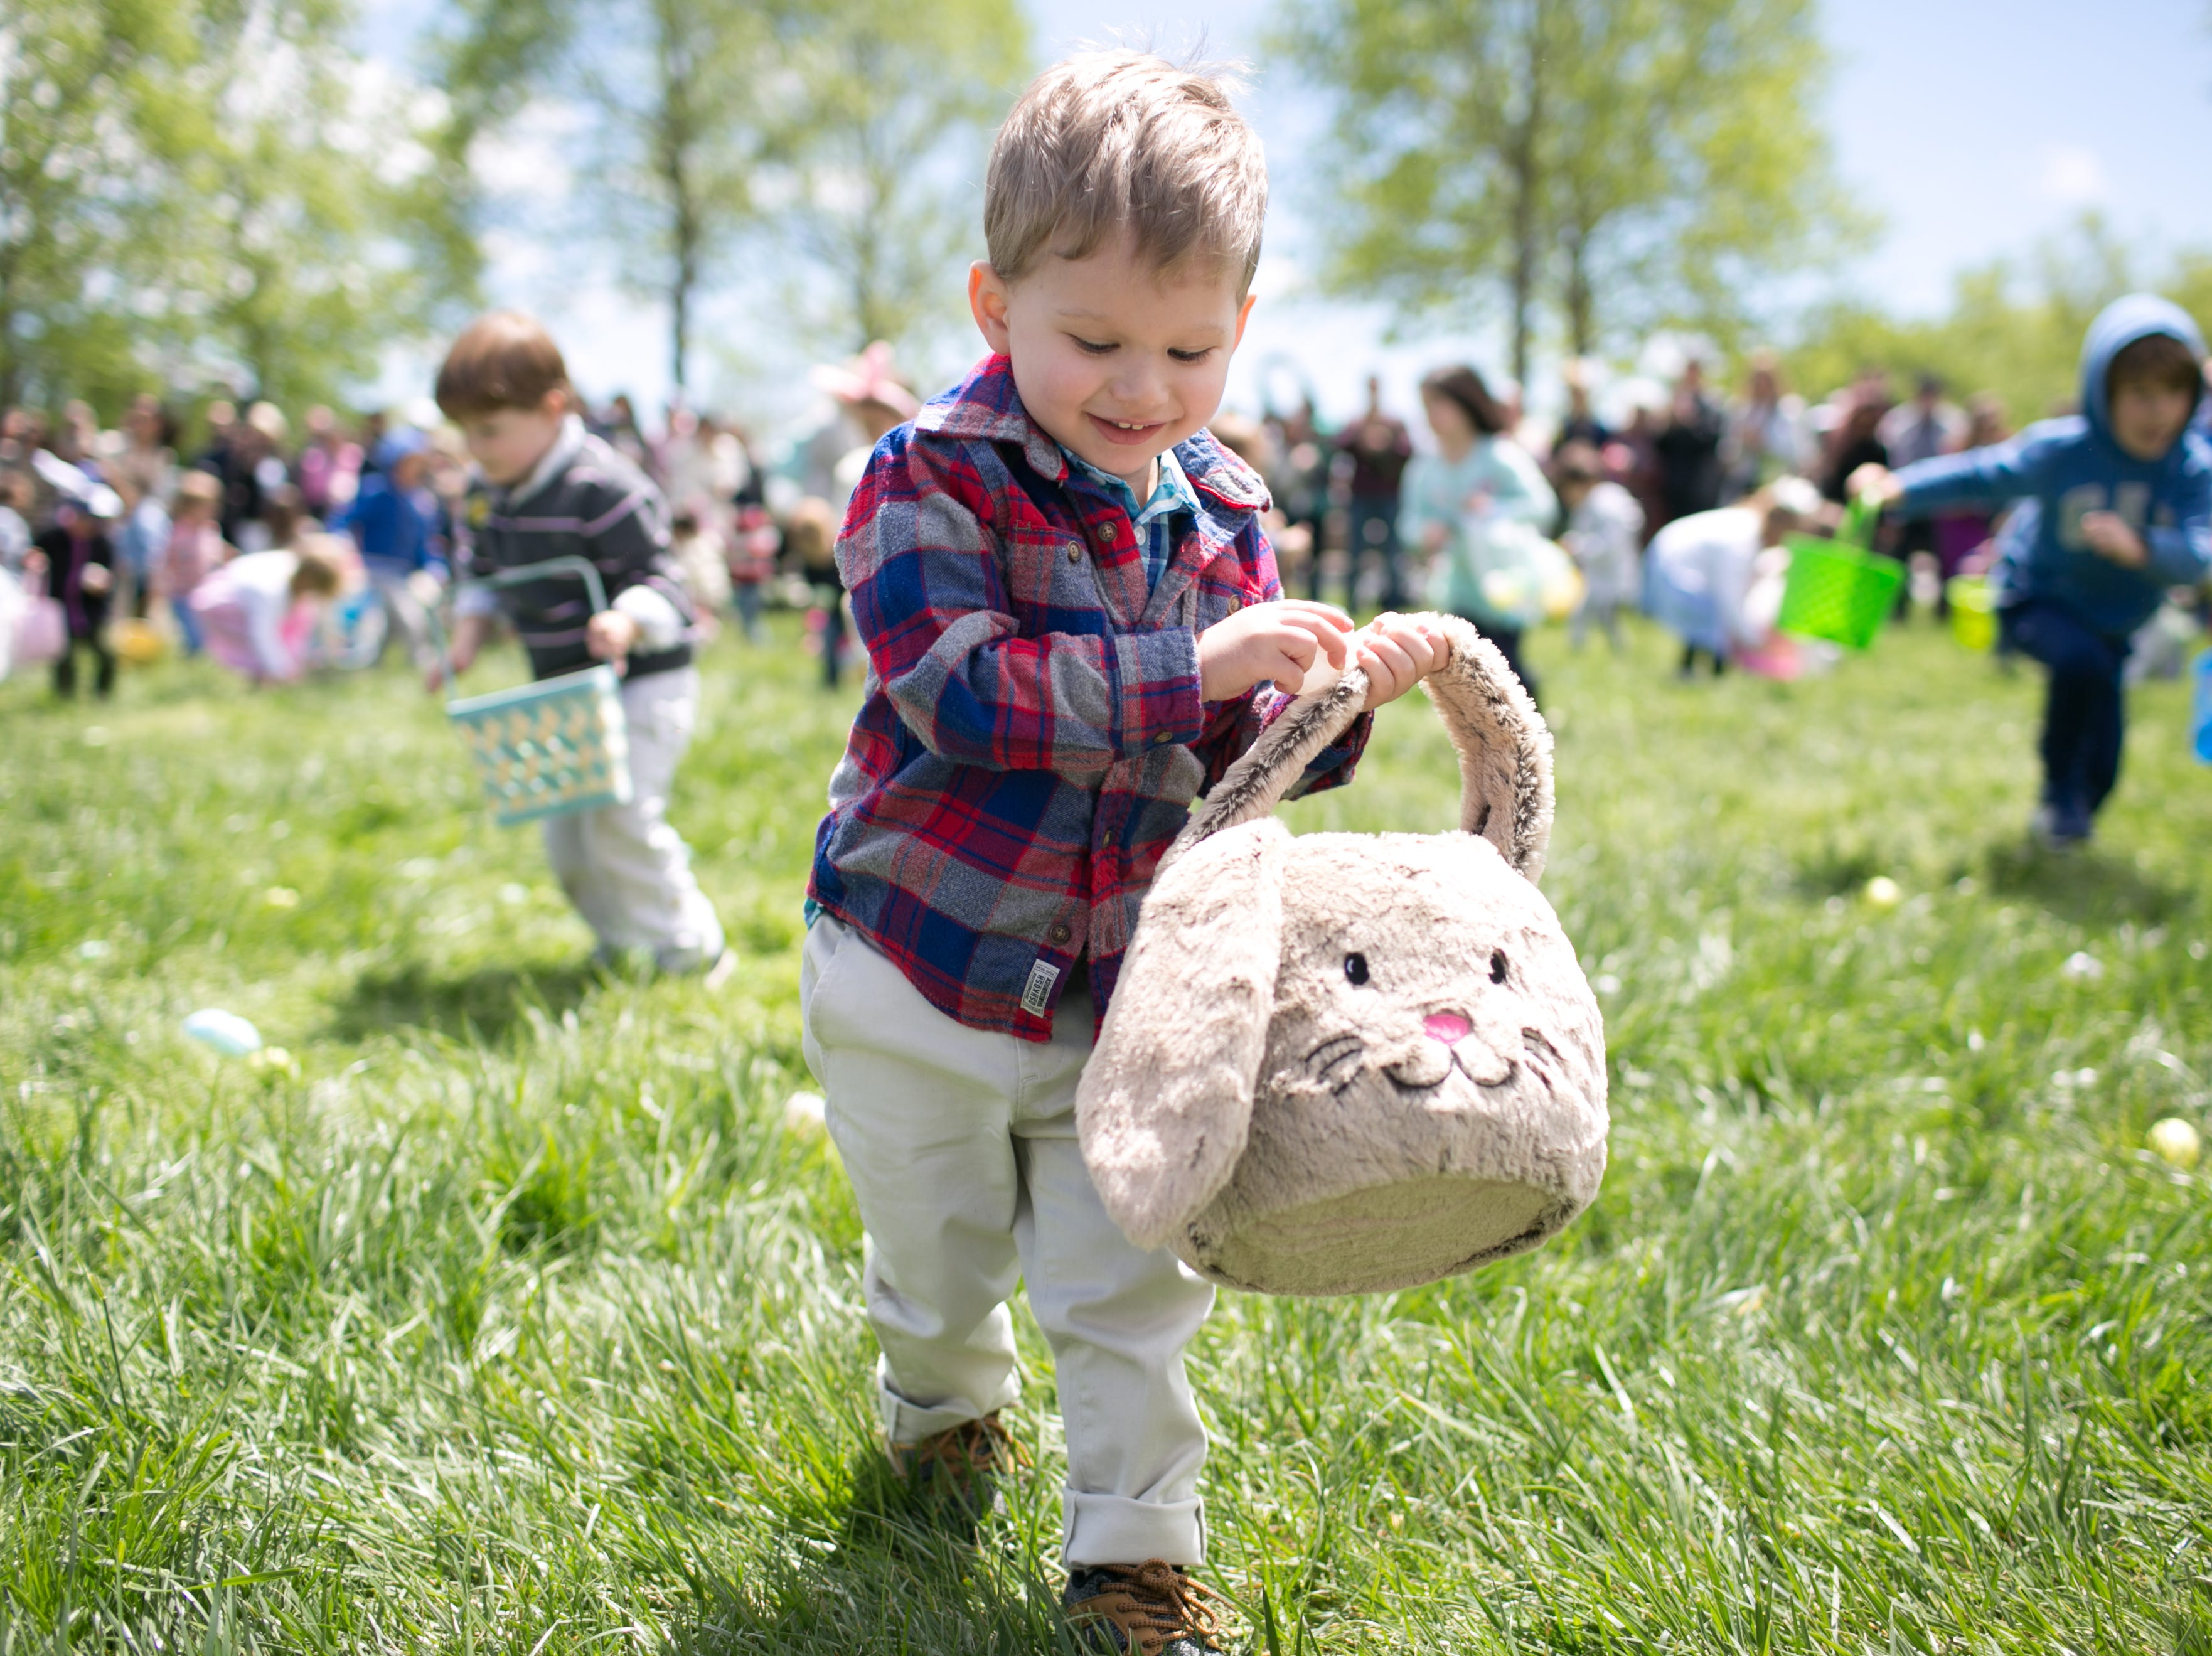 William Grayson, 2, of Fletcher, searches for eggs during the Biltmore Estate's Easter egg hunt on April 21, 2019. Biltmore's hunt is one of the Southeast's largest, with hundreds of children ages 2–9.